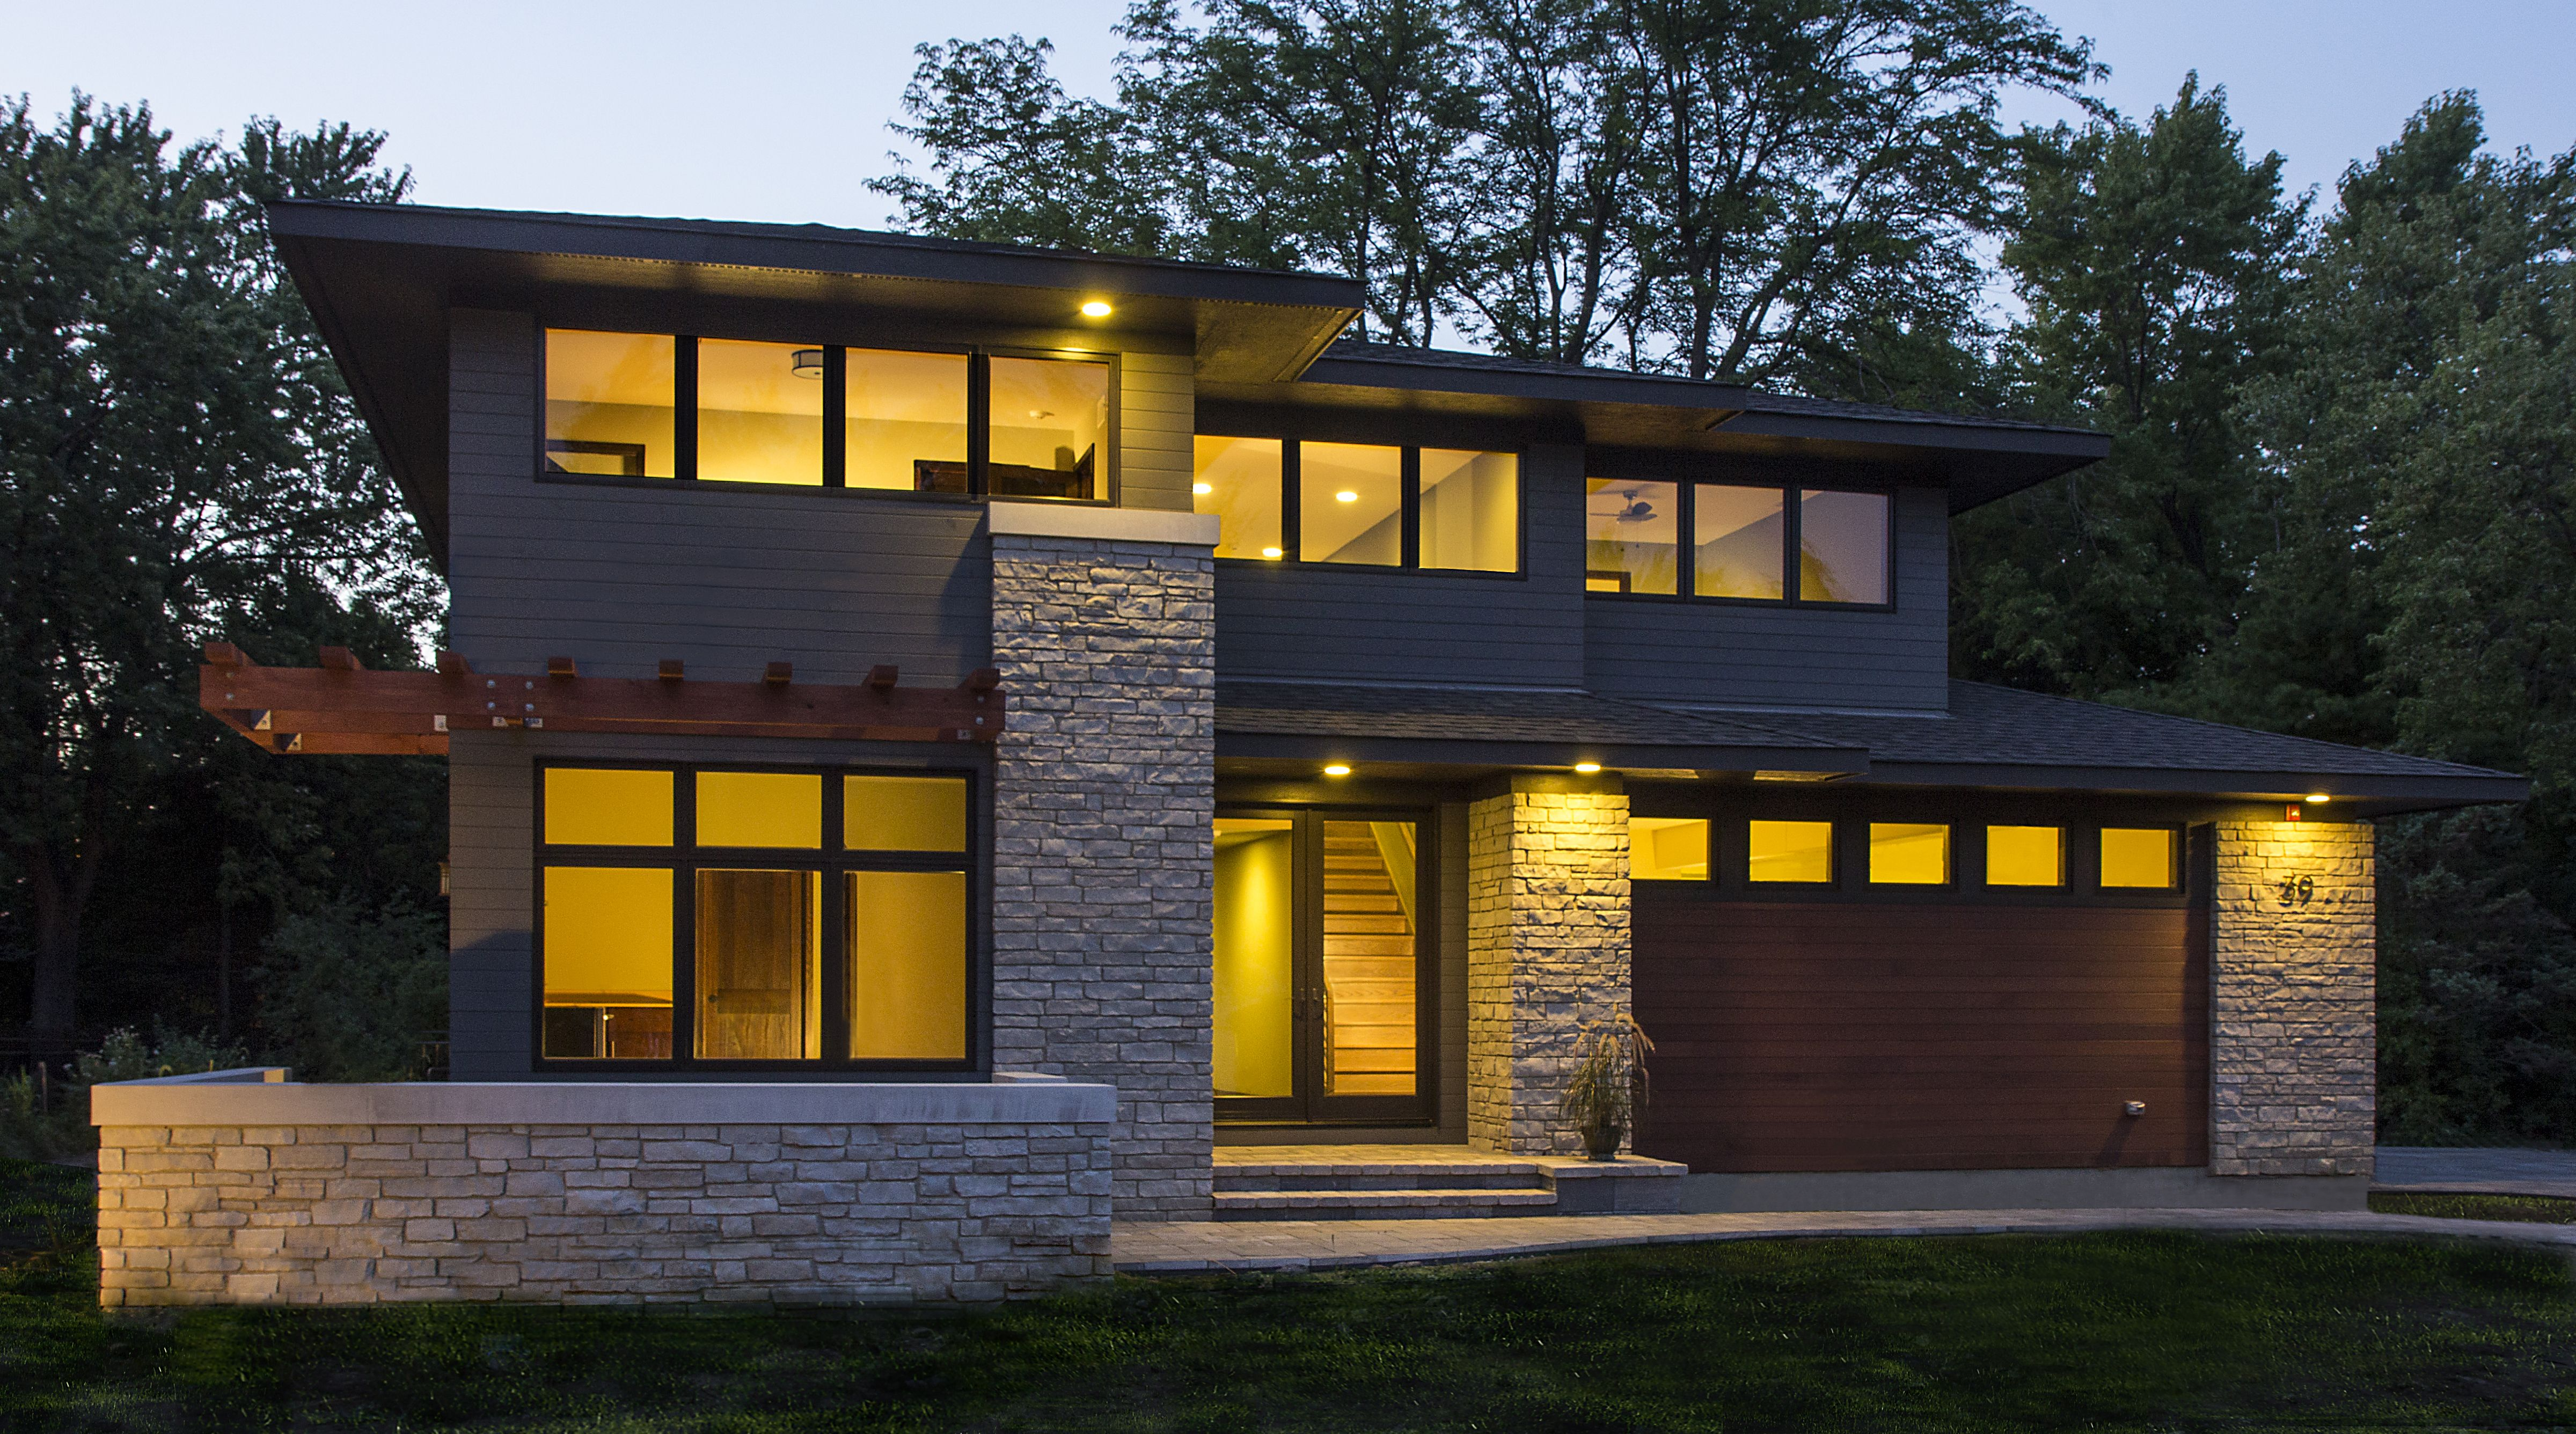 Exceptional Frank Lloyd Wright Inspired: Walk Out Ranch, West Chicago, Illinois Modern  Organic Prairie Home, Indian Hills, Colorado Modern Prairie Style Home:  U201cHarmonic ...